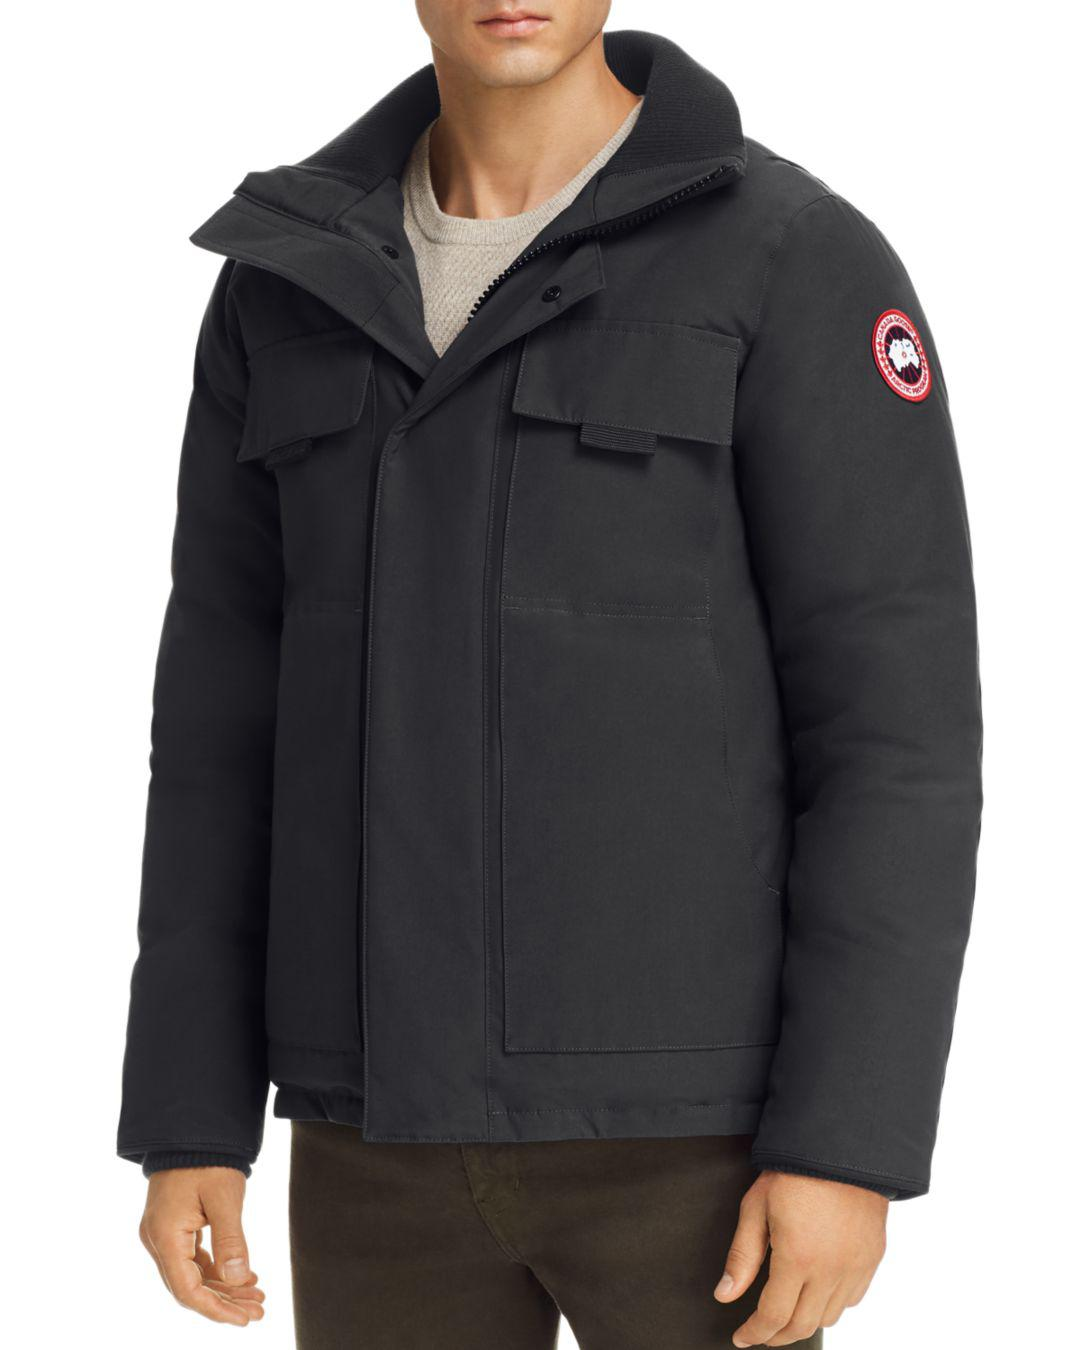 76ff4a18a014f Canada Goose - Black Forester Down Jacket for Men - Lyst. View fullscreen